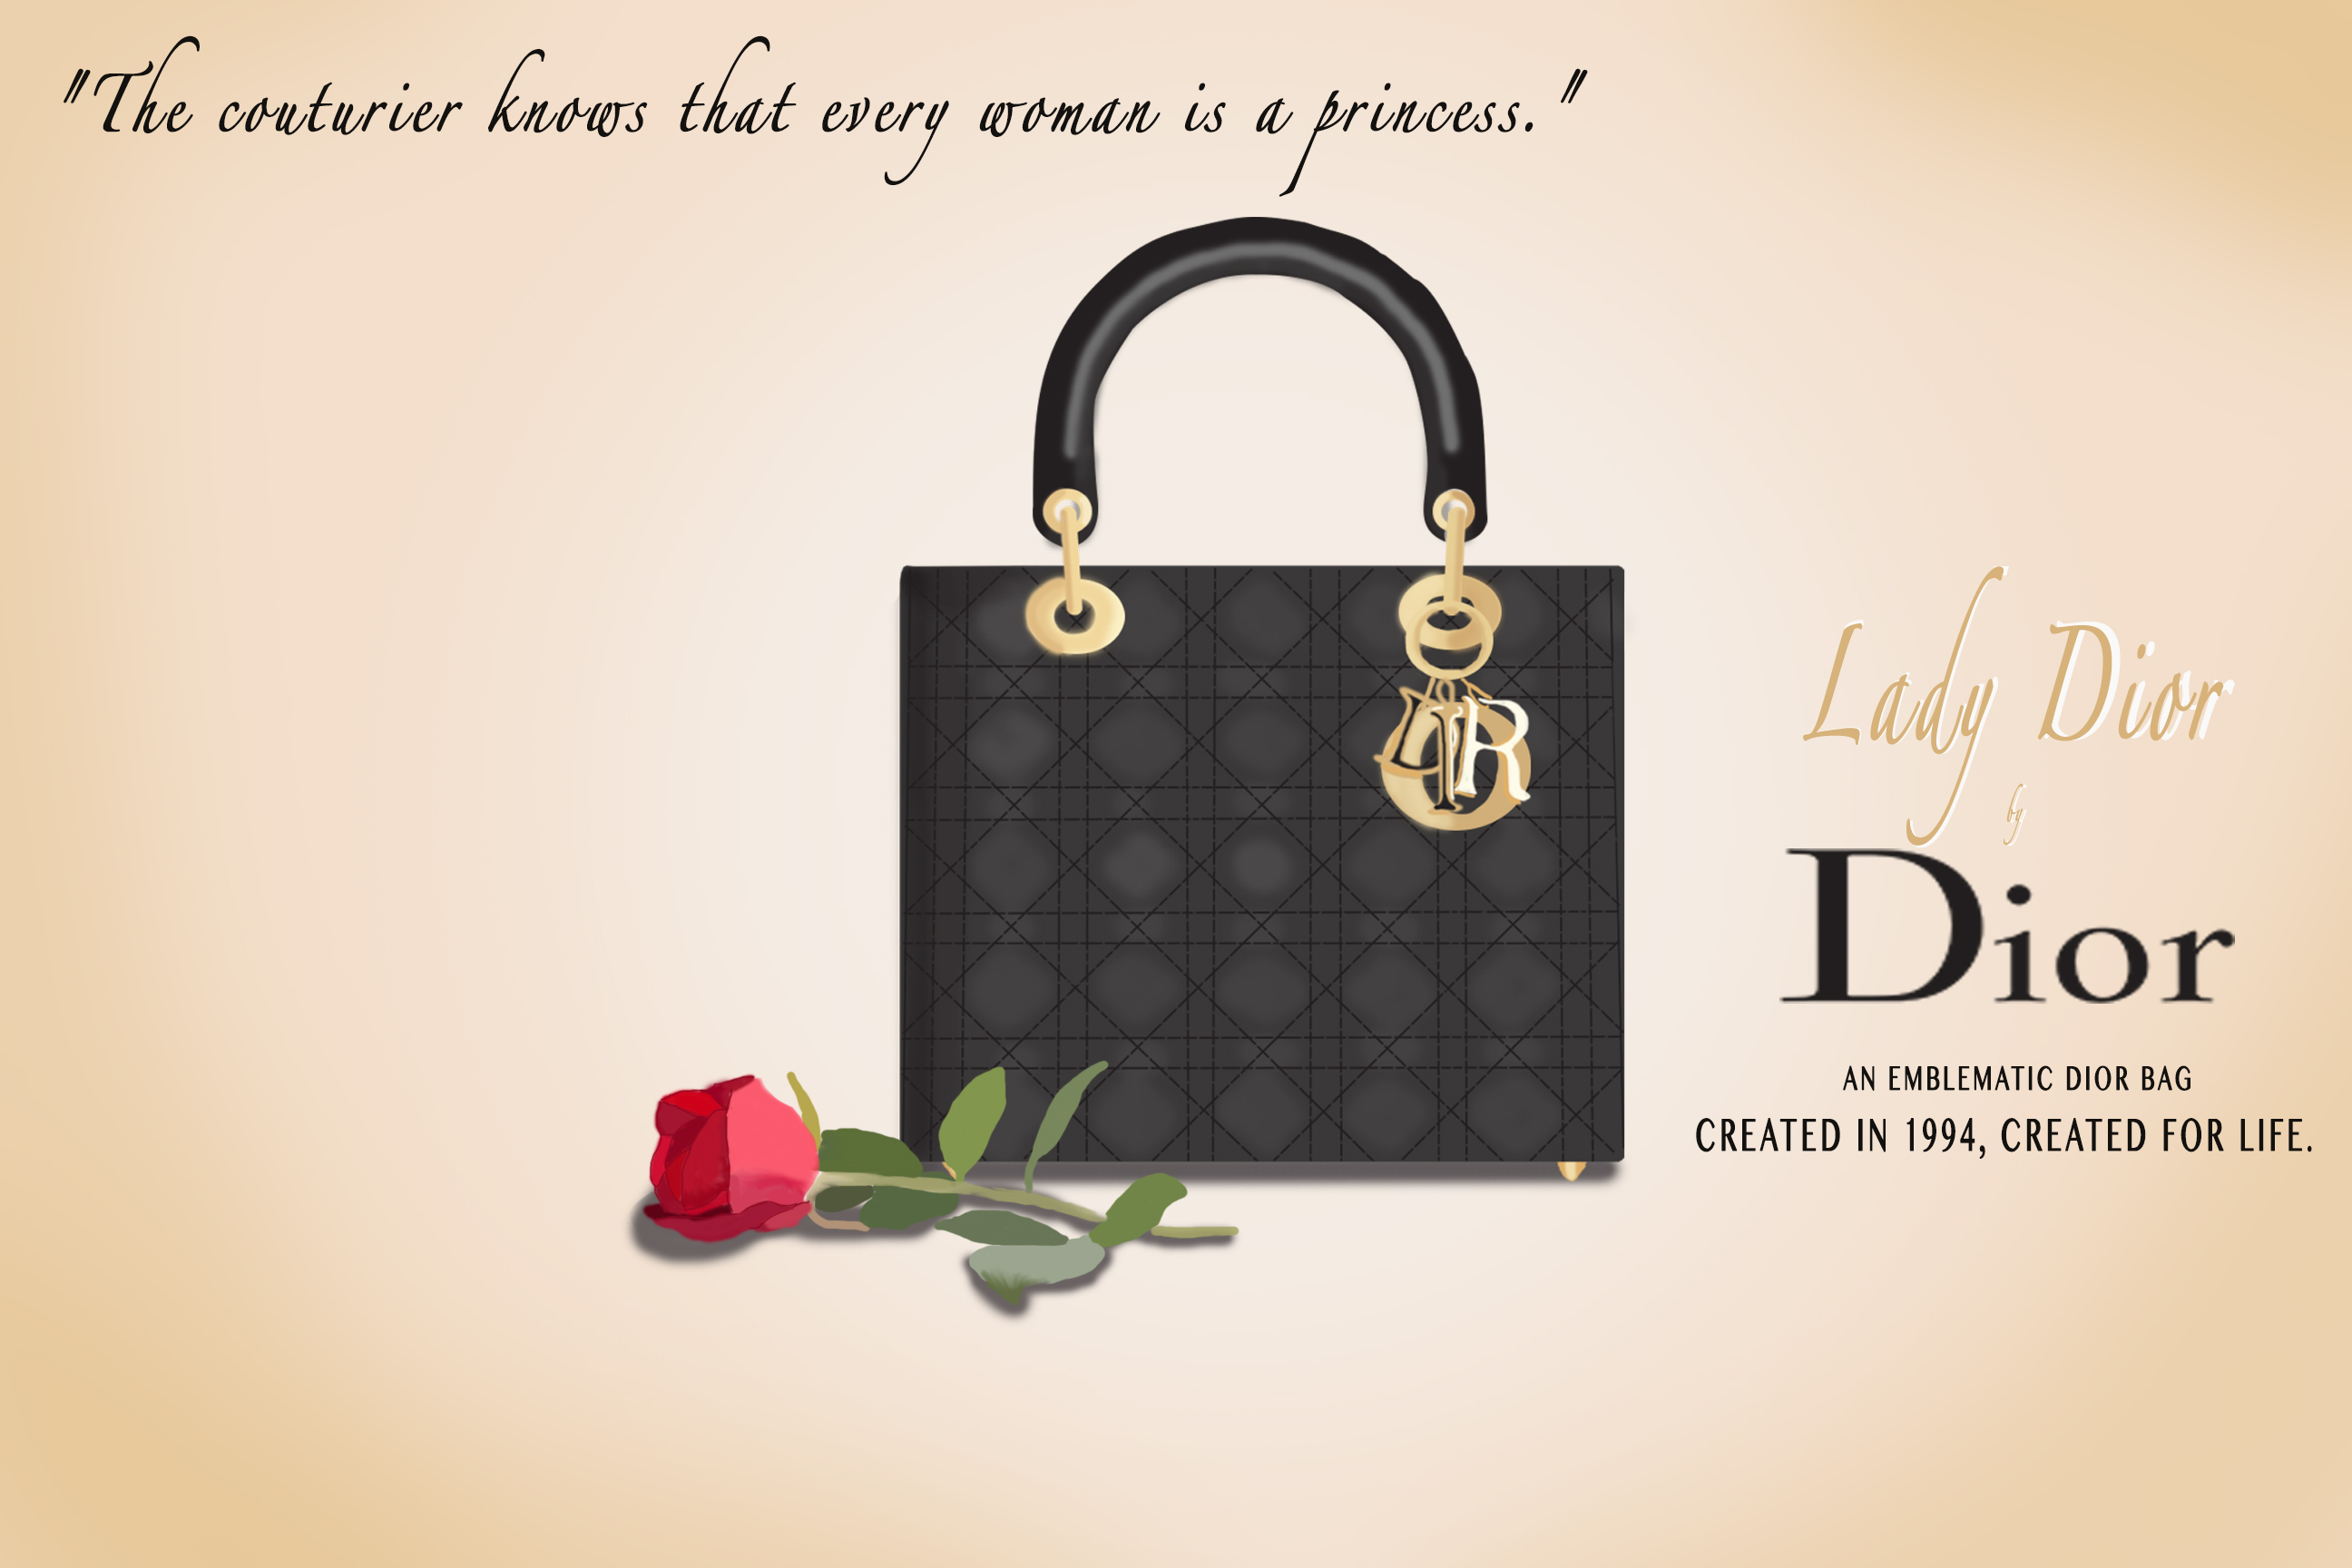 Bridge 3: Lady Dior Infographic Ad Campaign